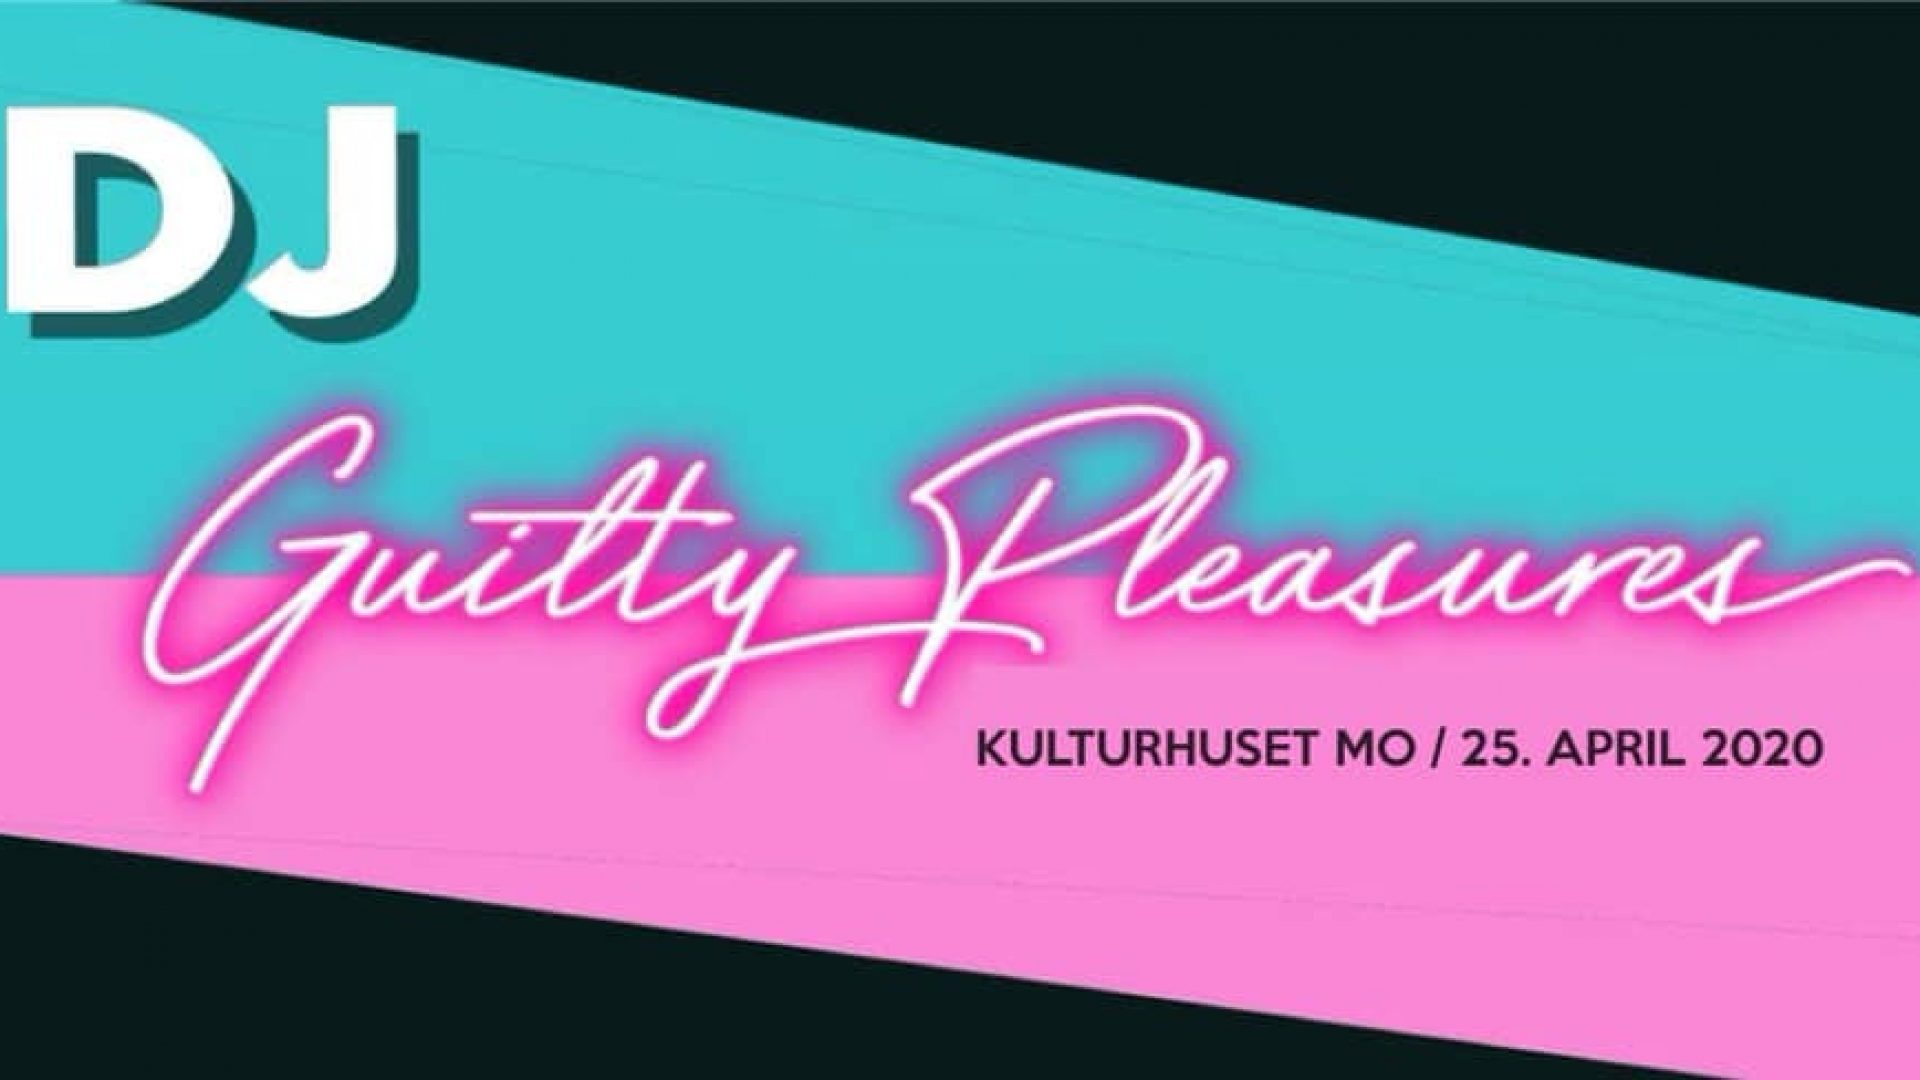 Reklameplakat Guilty pleasure